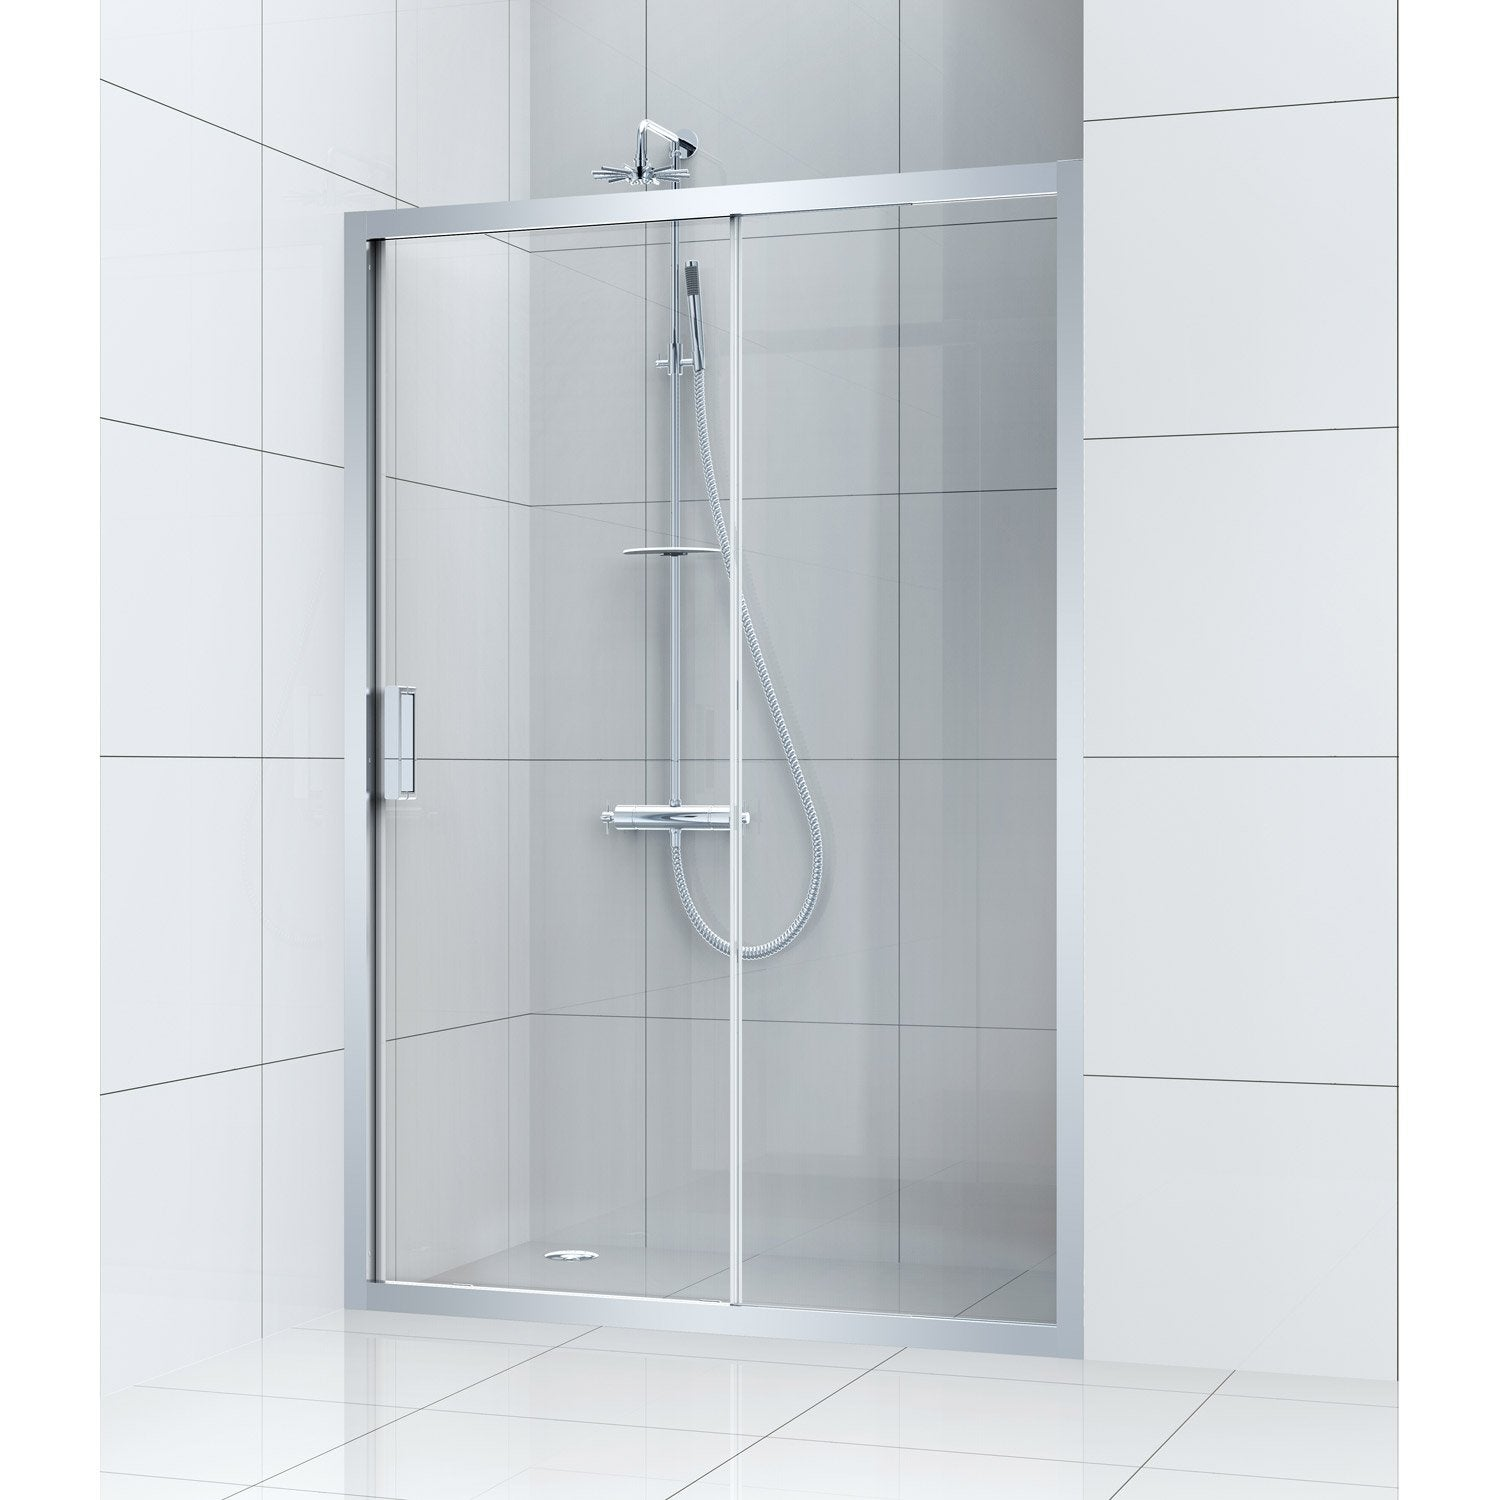 Porte de douche coulissante 120 cm transparent charm for Fartools rex 120 leroy merlin